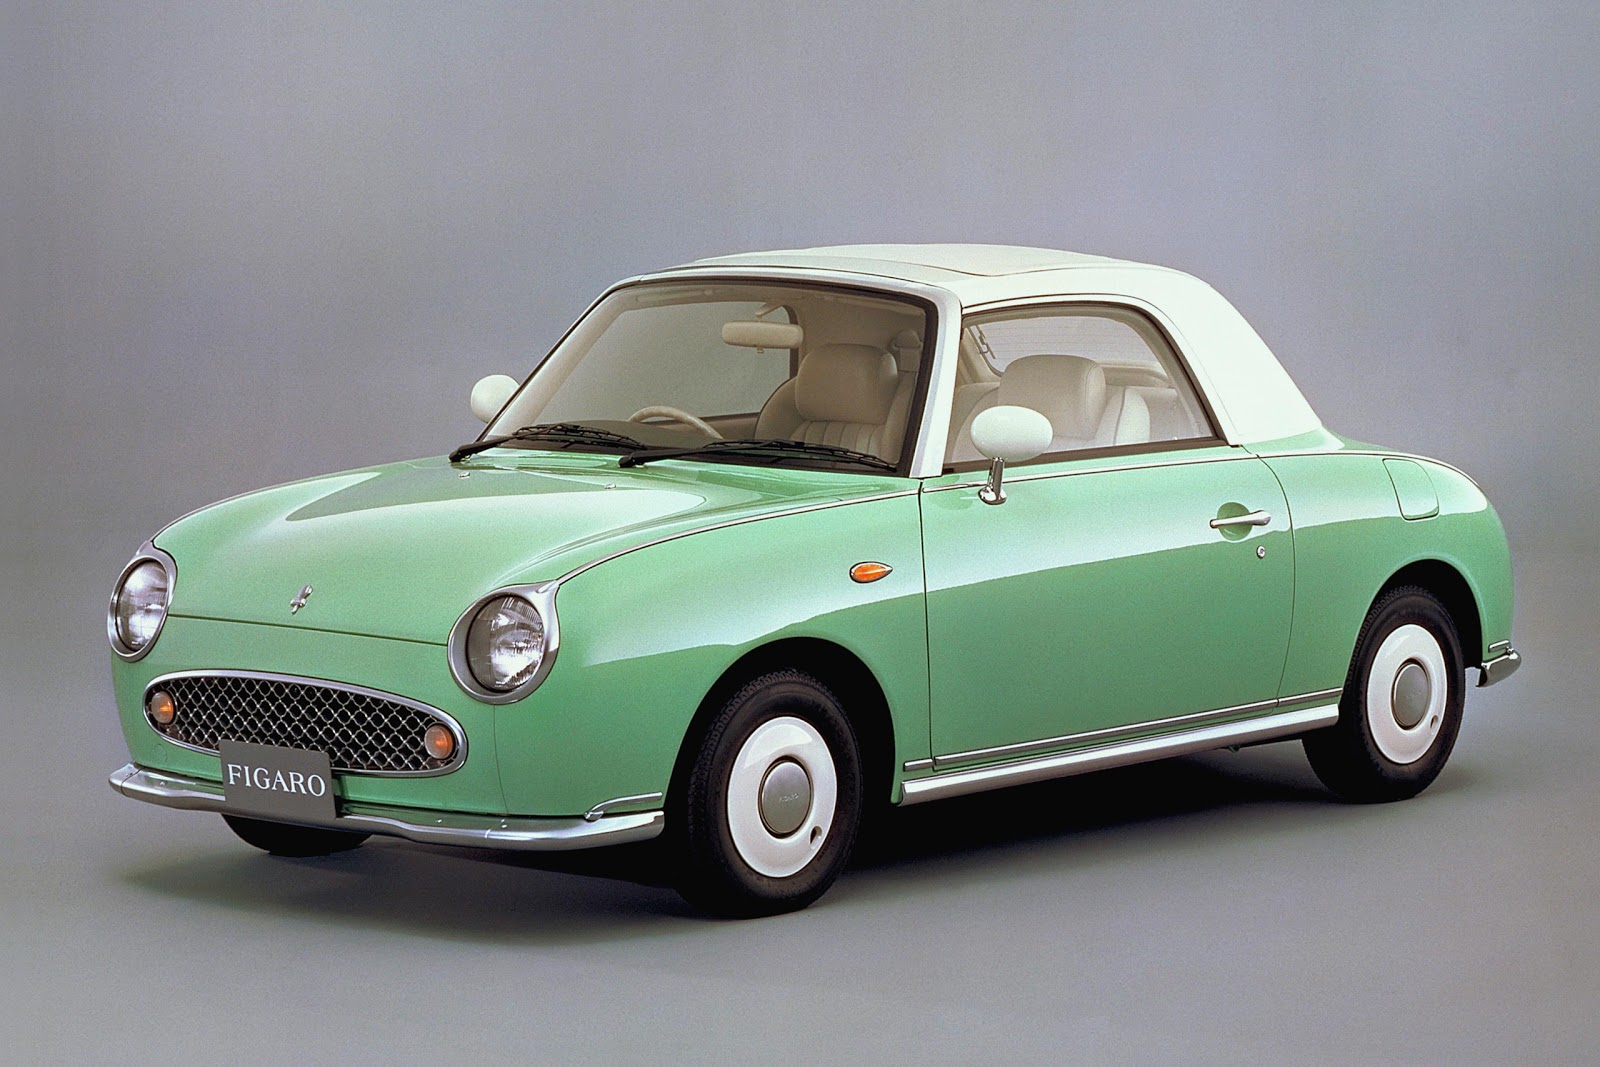 Nissan Figaro 1989 Japanese Classic Car Muscle Cars